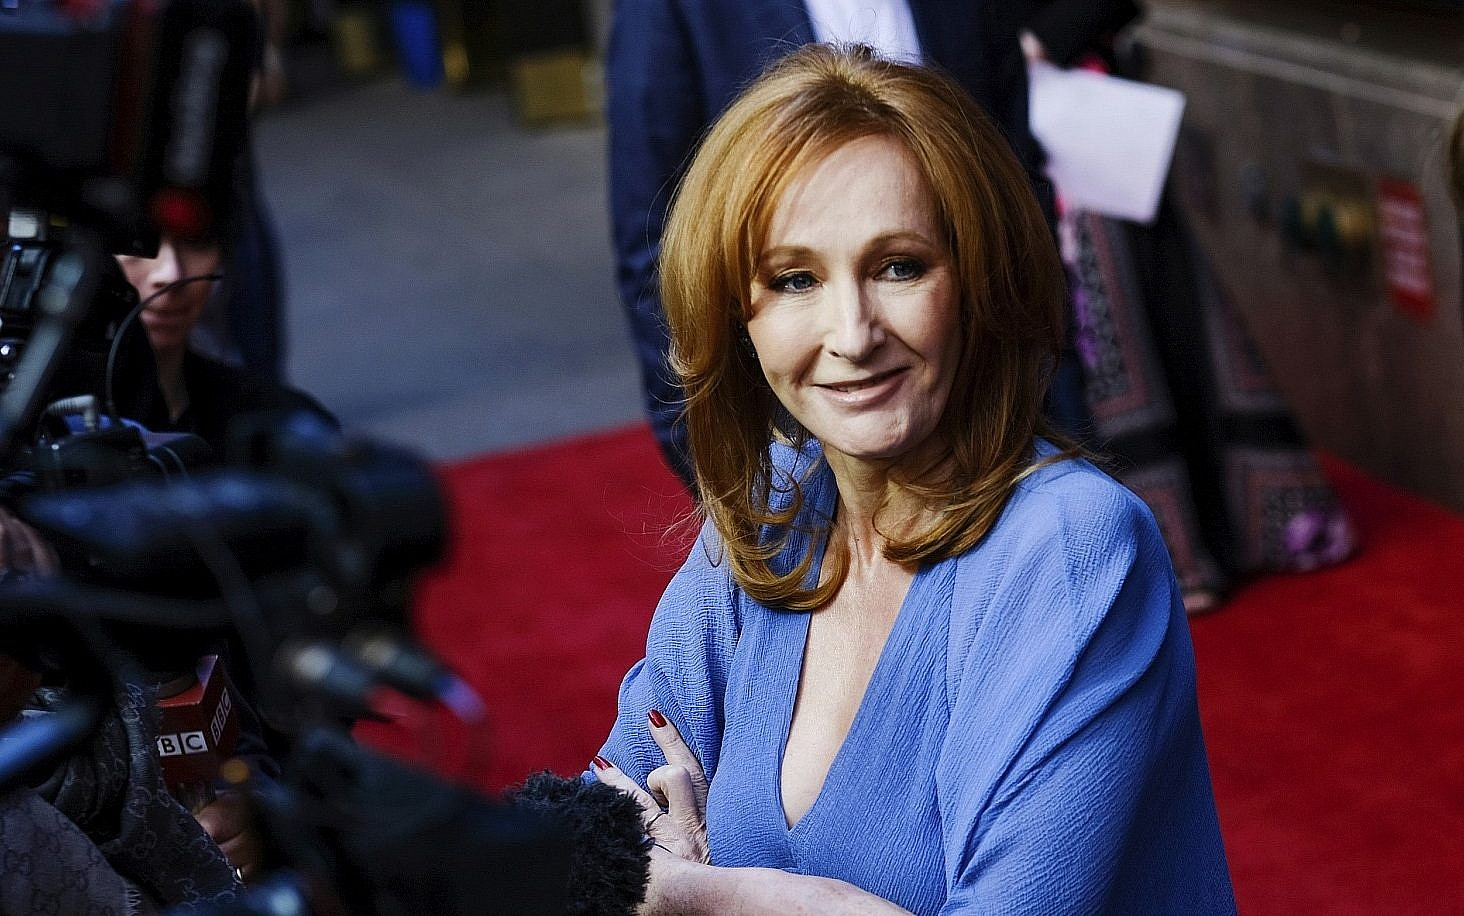 In jk rowlings new novel a villain is an israel hating anti author jk rowling attends the harry potter and the cursed child broadway opening at m4hsunfo